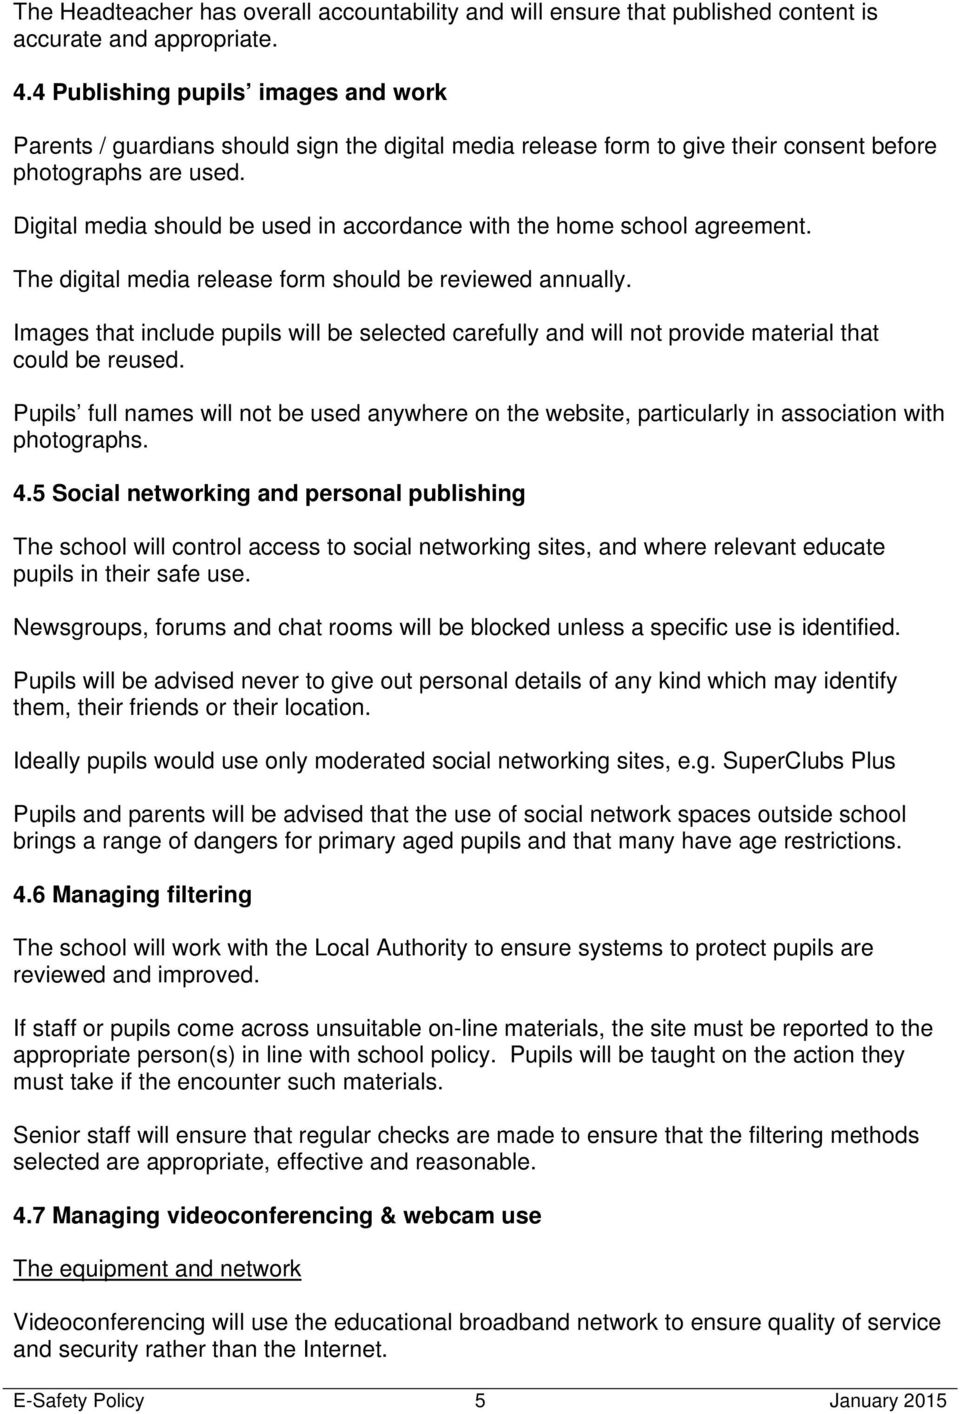 Digital media should be used in accordance with the home school agreement. The digital media release form should be reviewed annually.